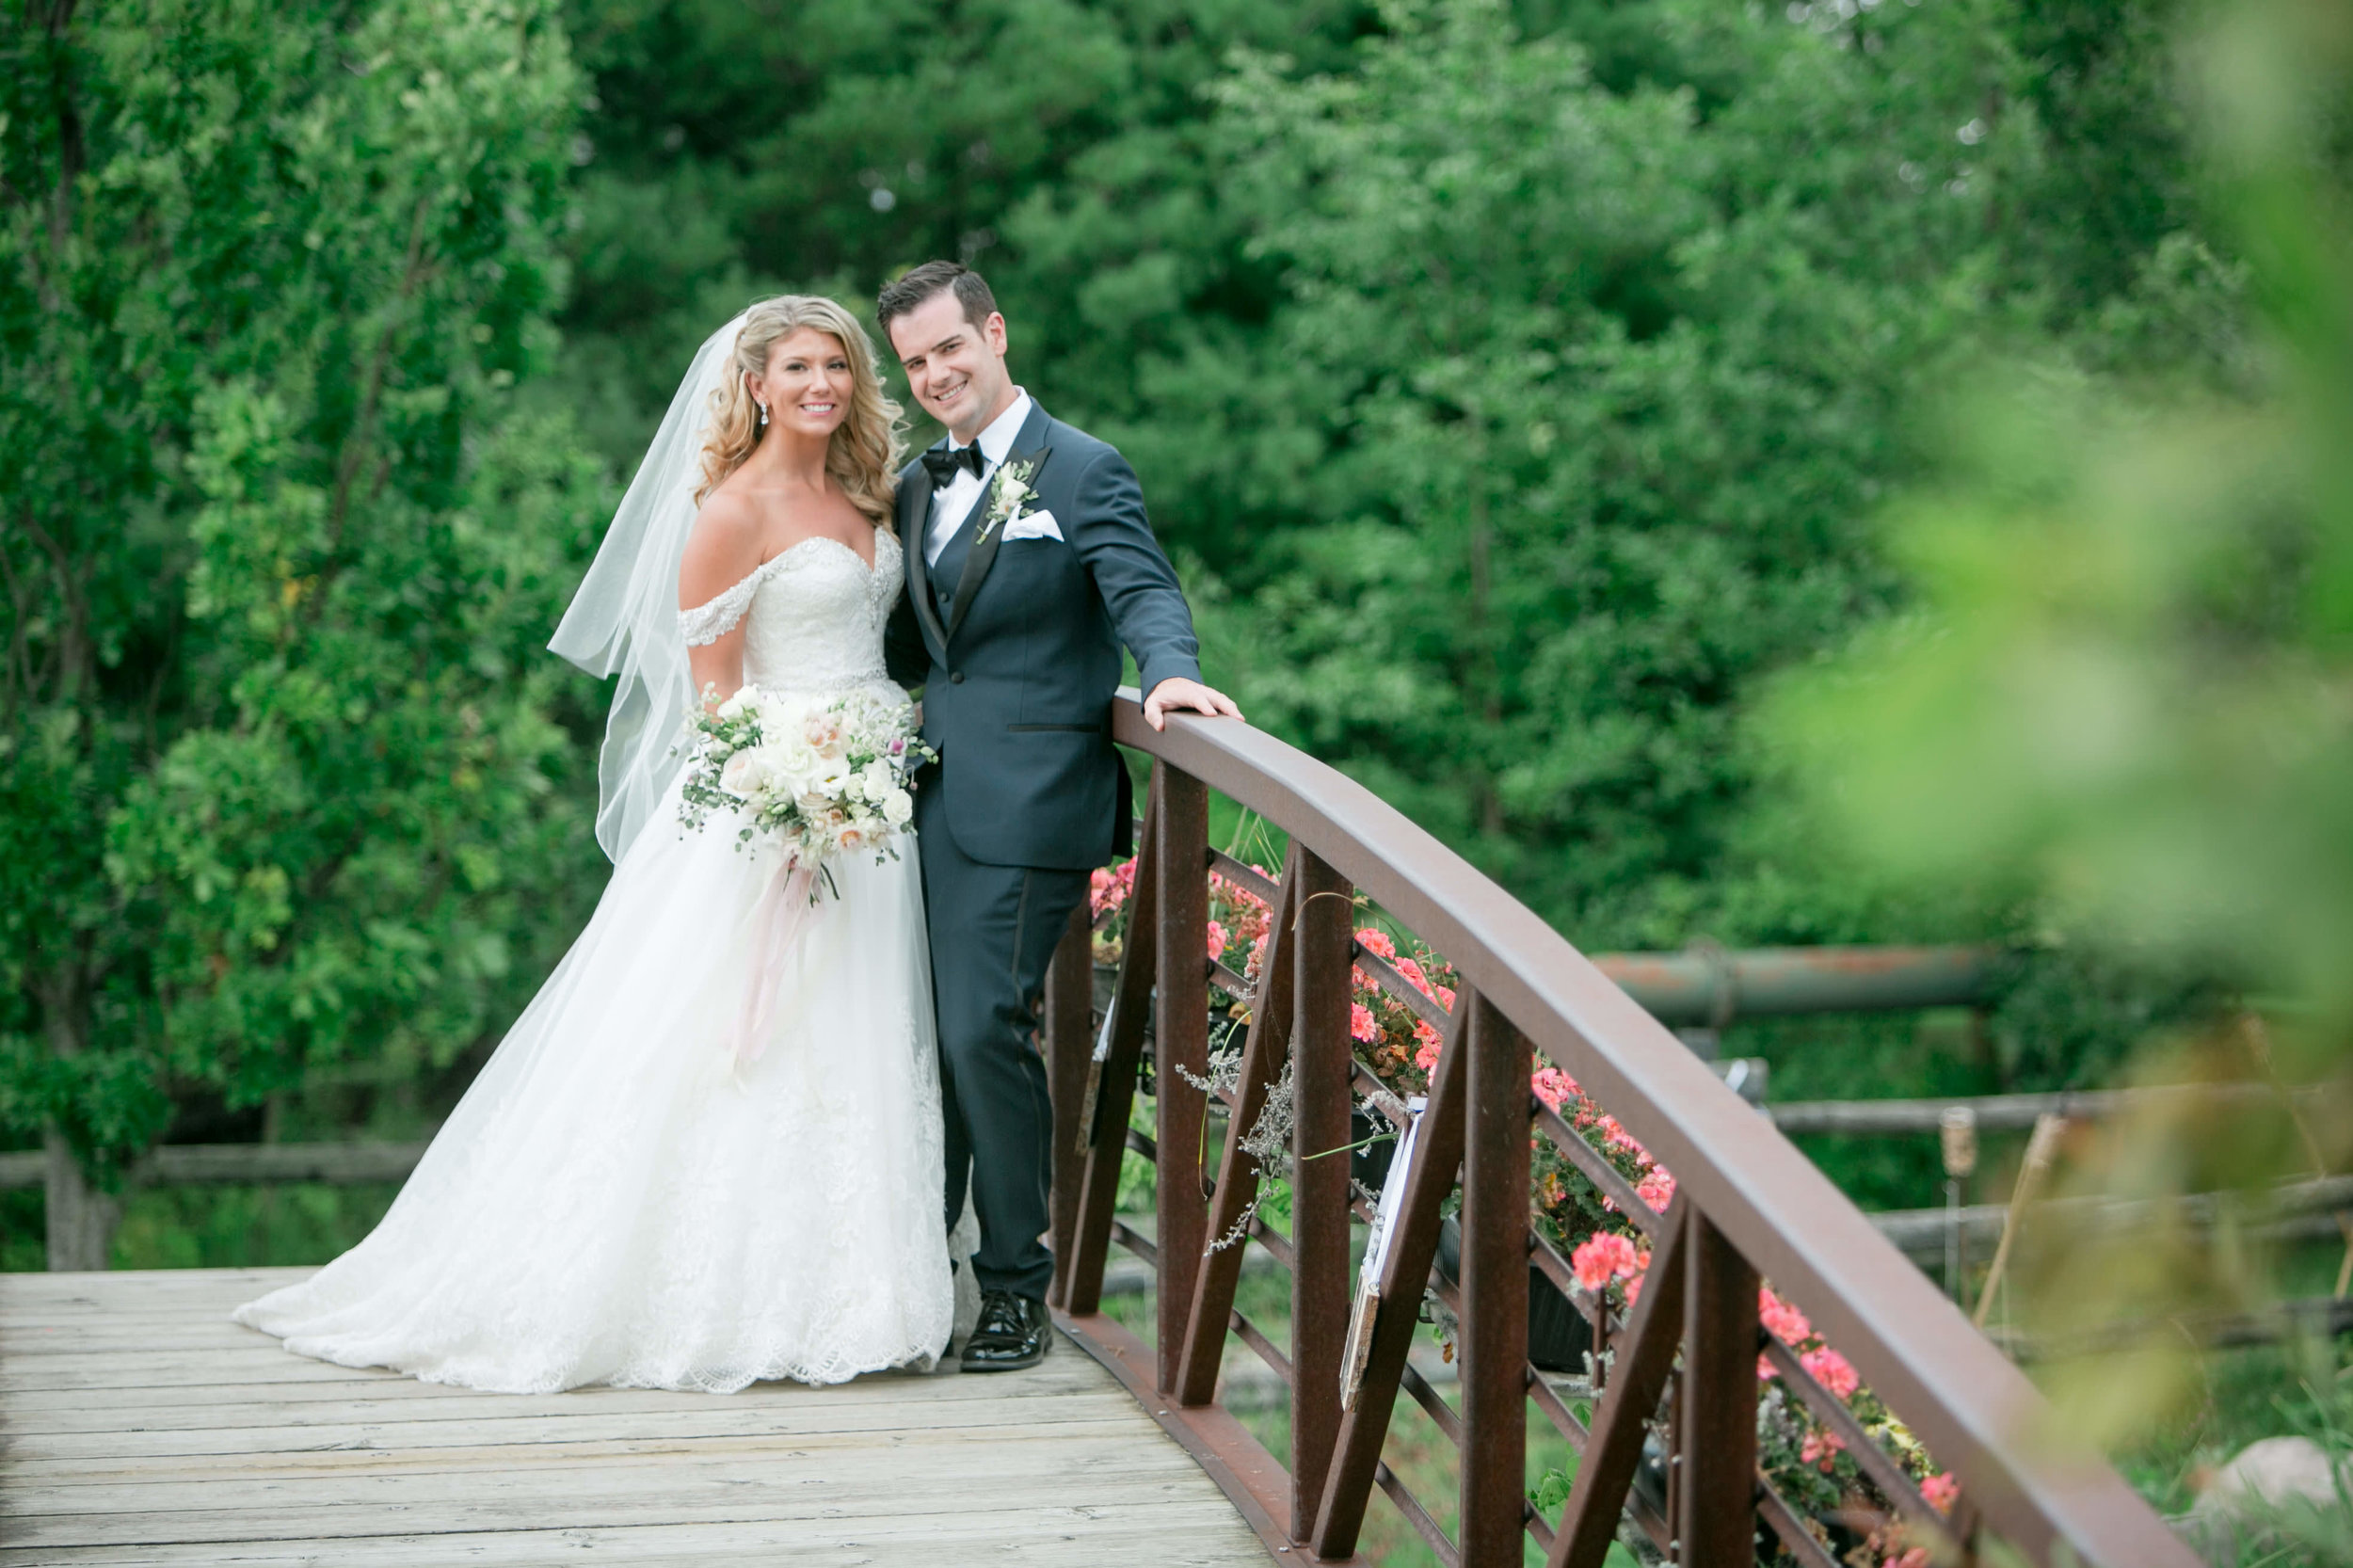 Ashley___Zac___Daniel_Ricci_Weddings___High_Res._Finals_385.jpg